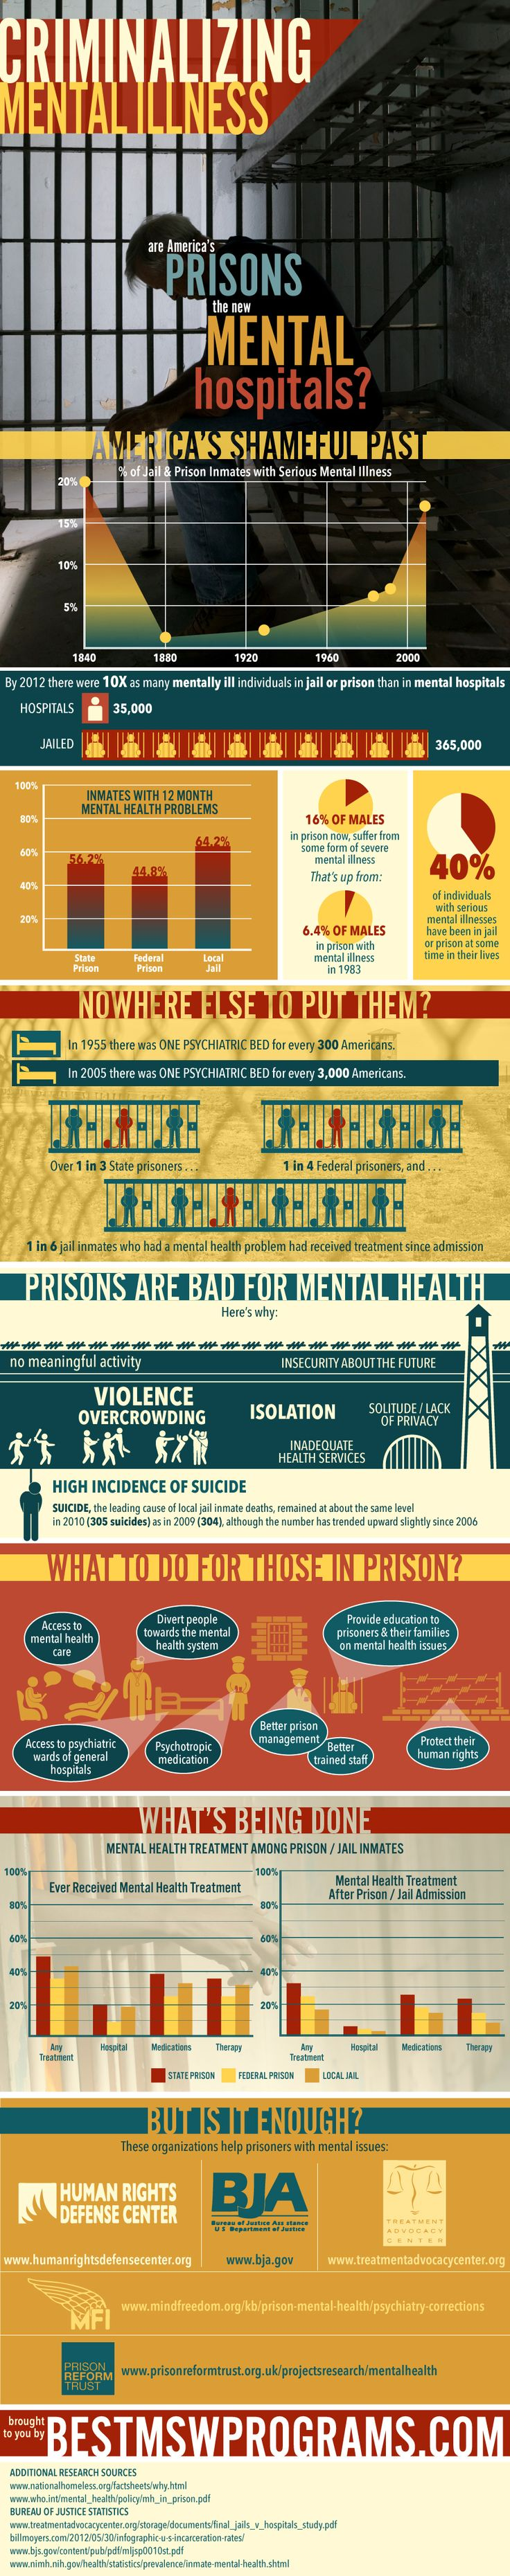 "United States is addicted to incarceration. We have 25% of the world's inmates and only 5% of the world's population. This national crisis is partly caused by the incarceration of many Americans who are mentally ill. The following research graphic shows the United States---""Criminalizing Mental Illness."" This graphic was provided by one of our faithful readers, Scarlett Jackson, who helped create this excellent research graphic.        Criminalizing Mental Illness    Shar..."